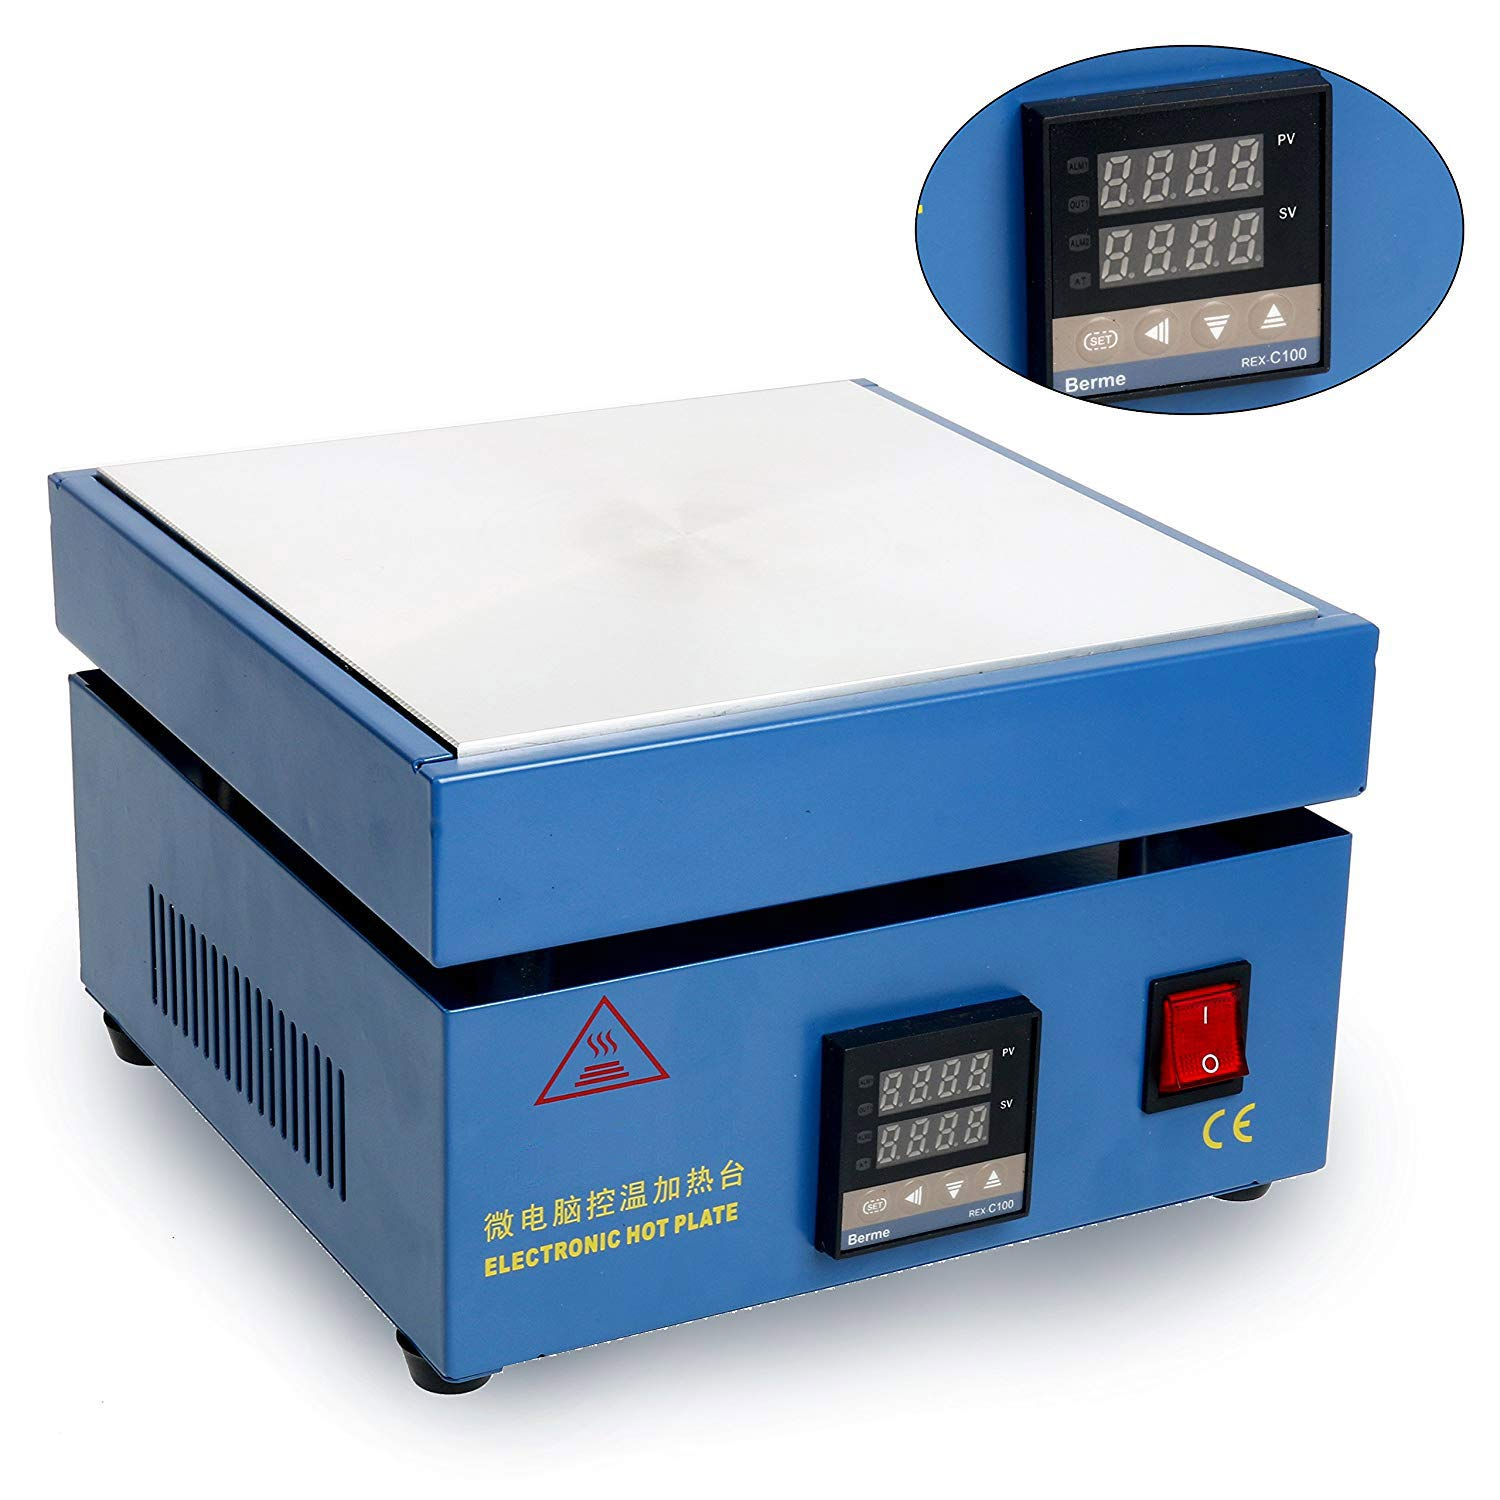 LED Microcomputer Electric Hot Plate Preheat Soldering Preheating Station Welder Hot Plate Rework Heater Lab 110V 800W 200X200mm Plate by YaeCCC